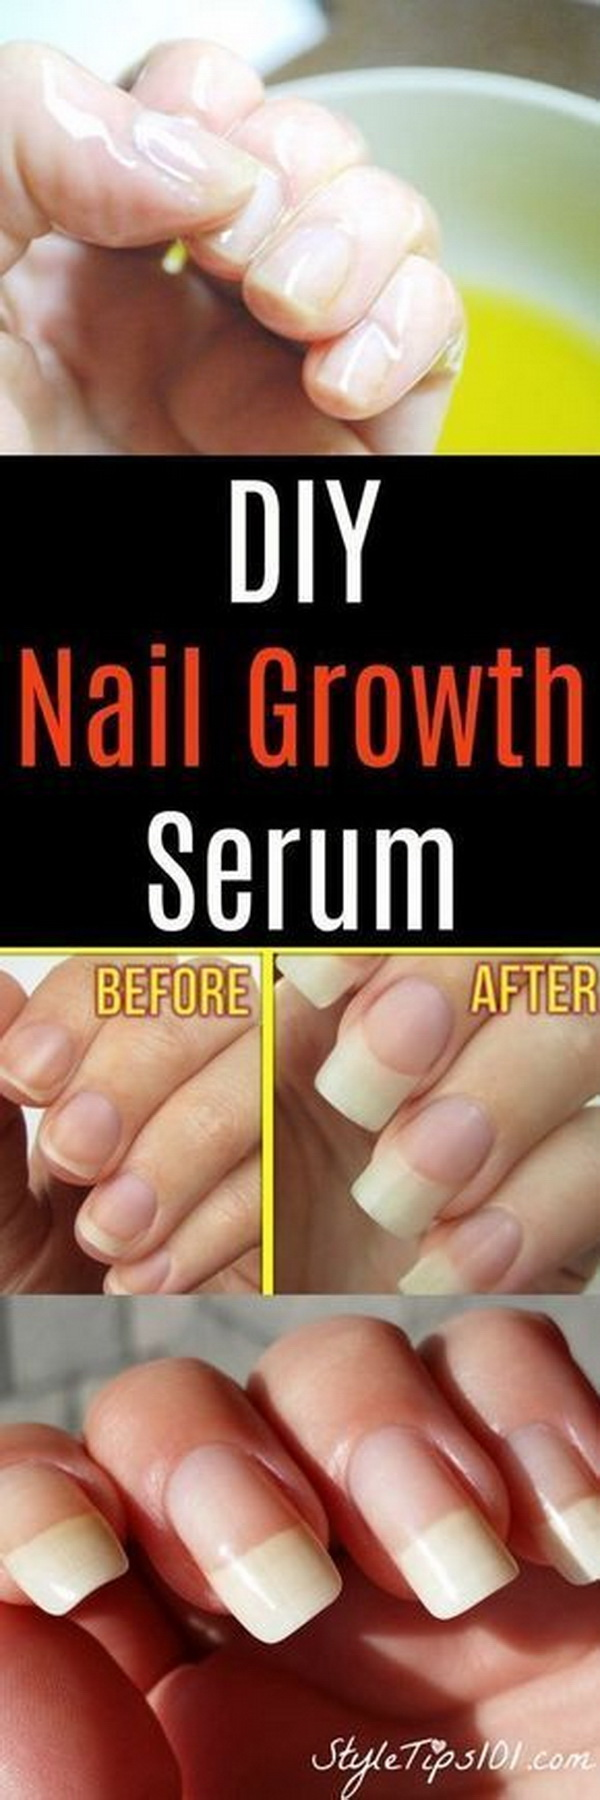 DIY Nail Growth Serum.